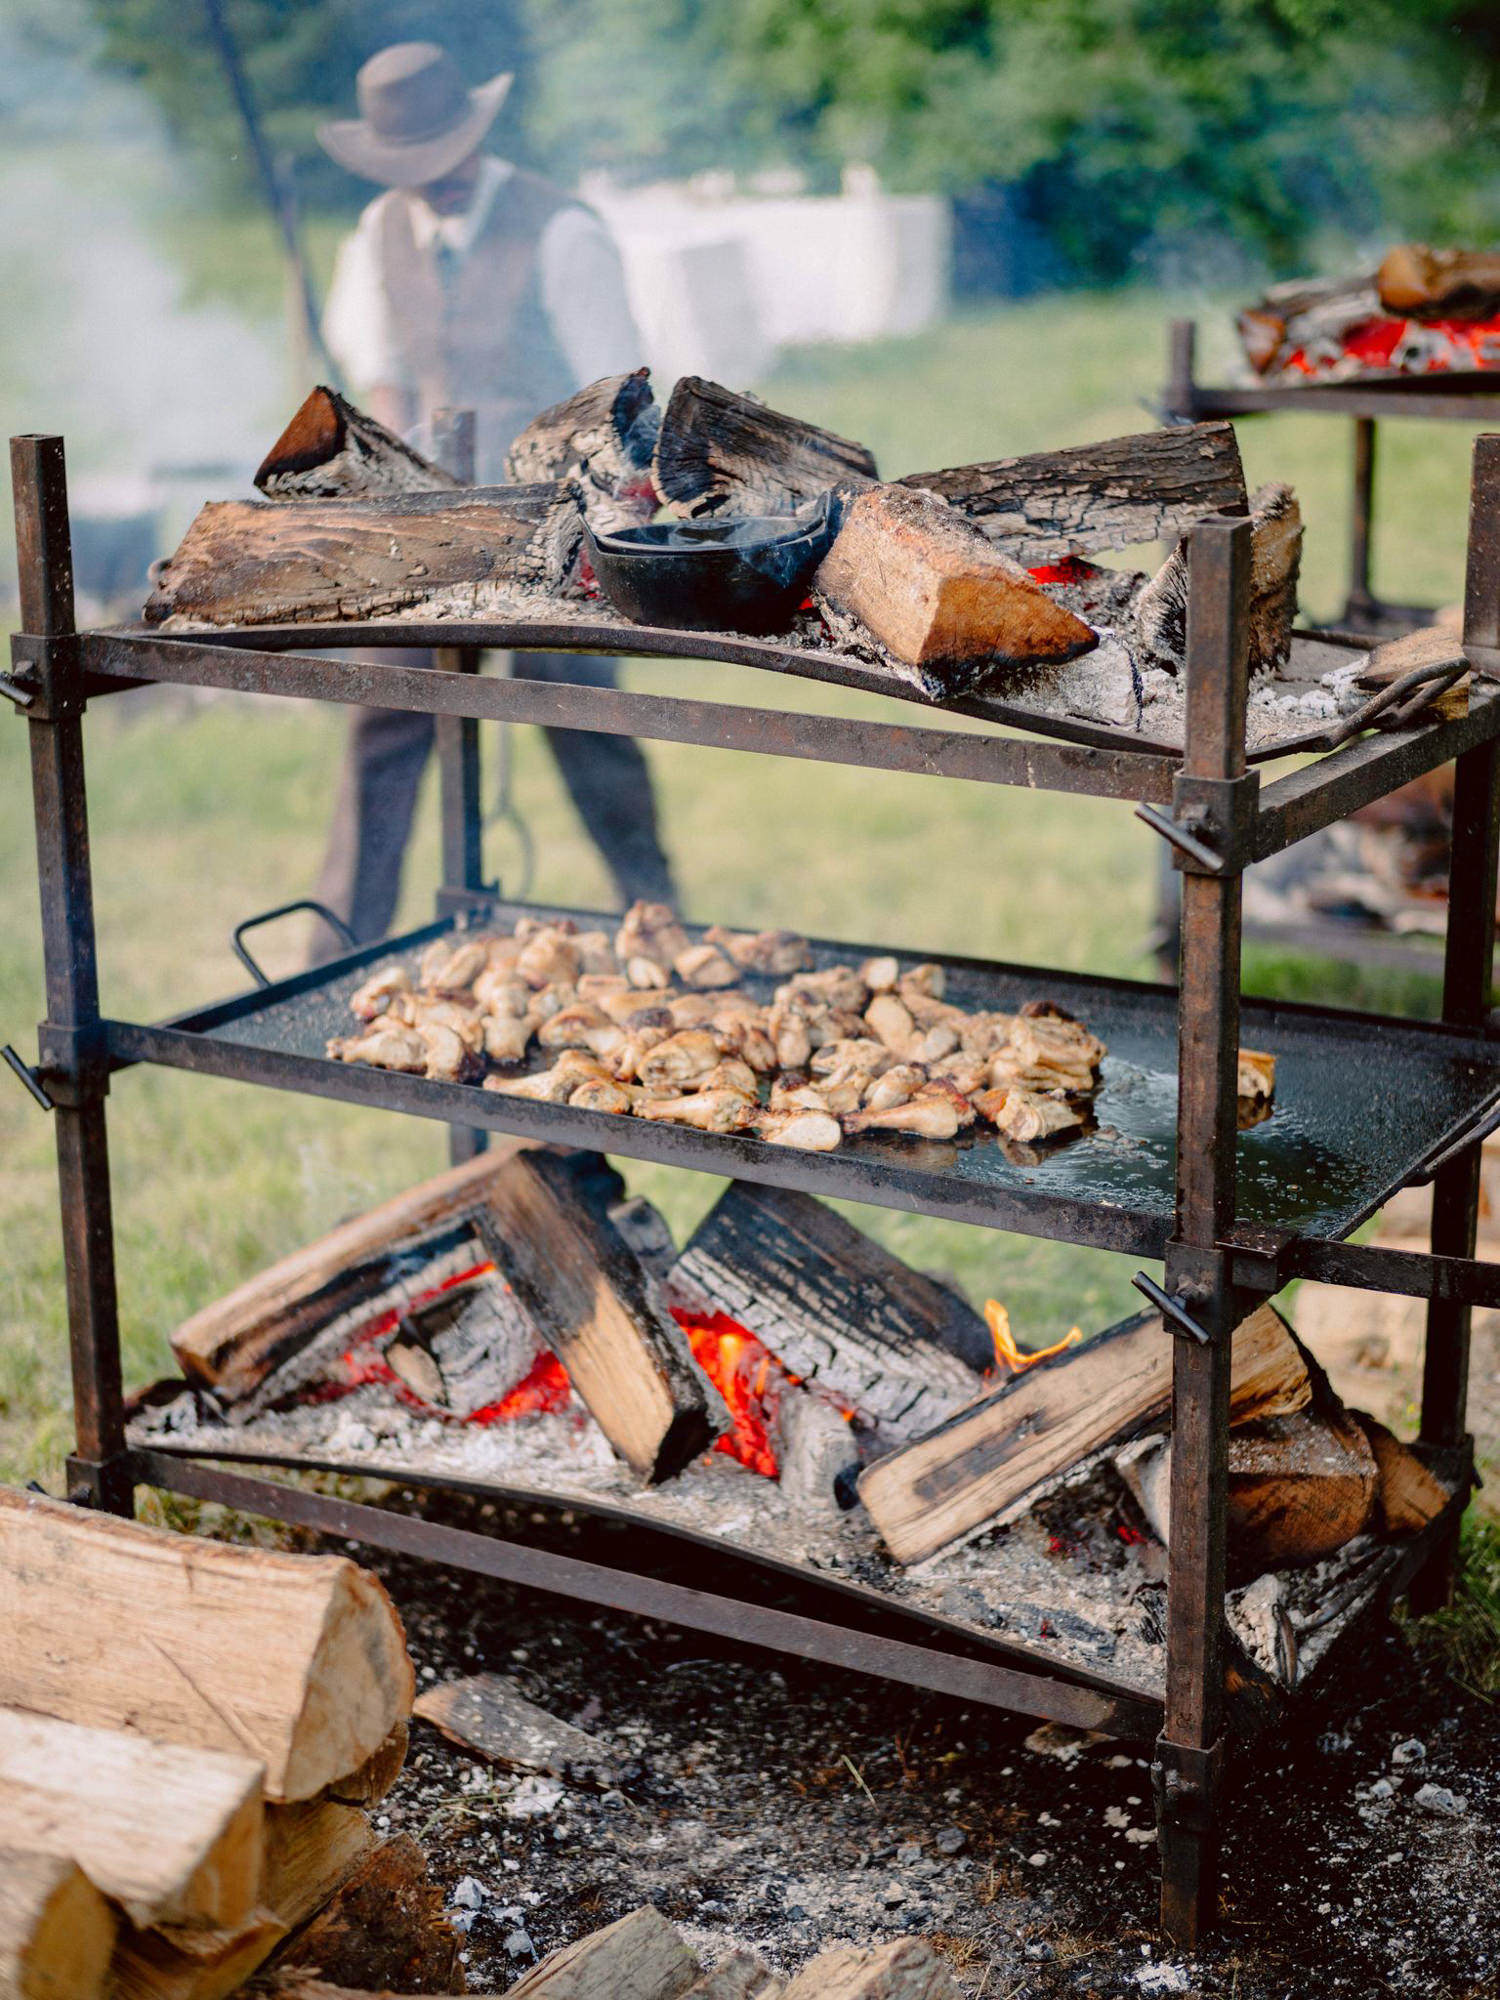 Campfire stove and rustic wedding  - Photo by Benj Haisch